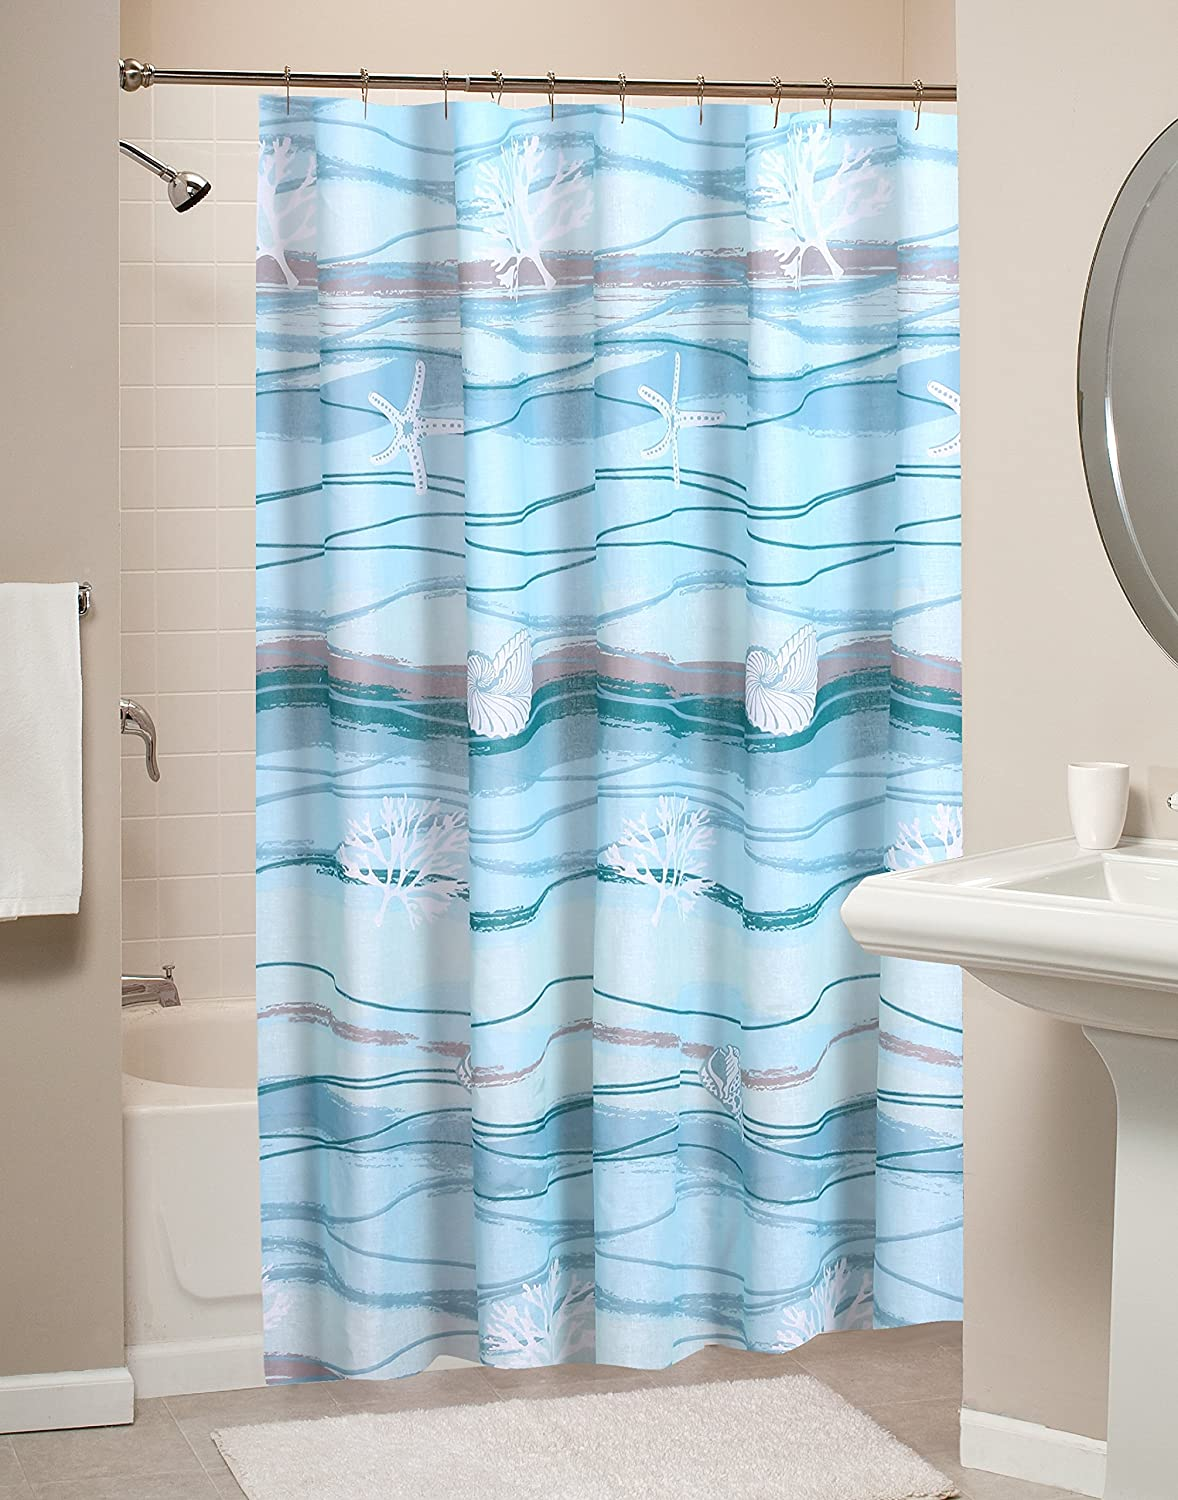 inspirations hooks themed theme surprising baseball curtains shower images curtain bear accessories and beach